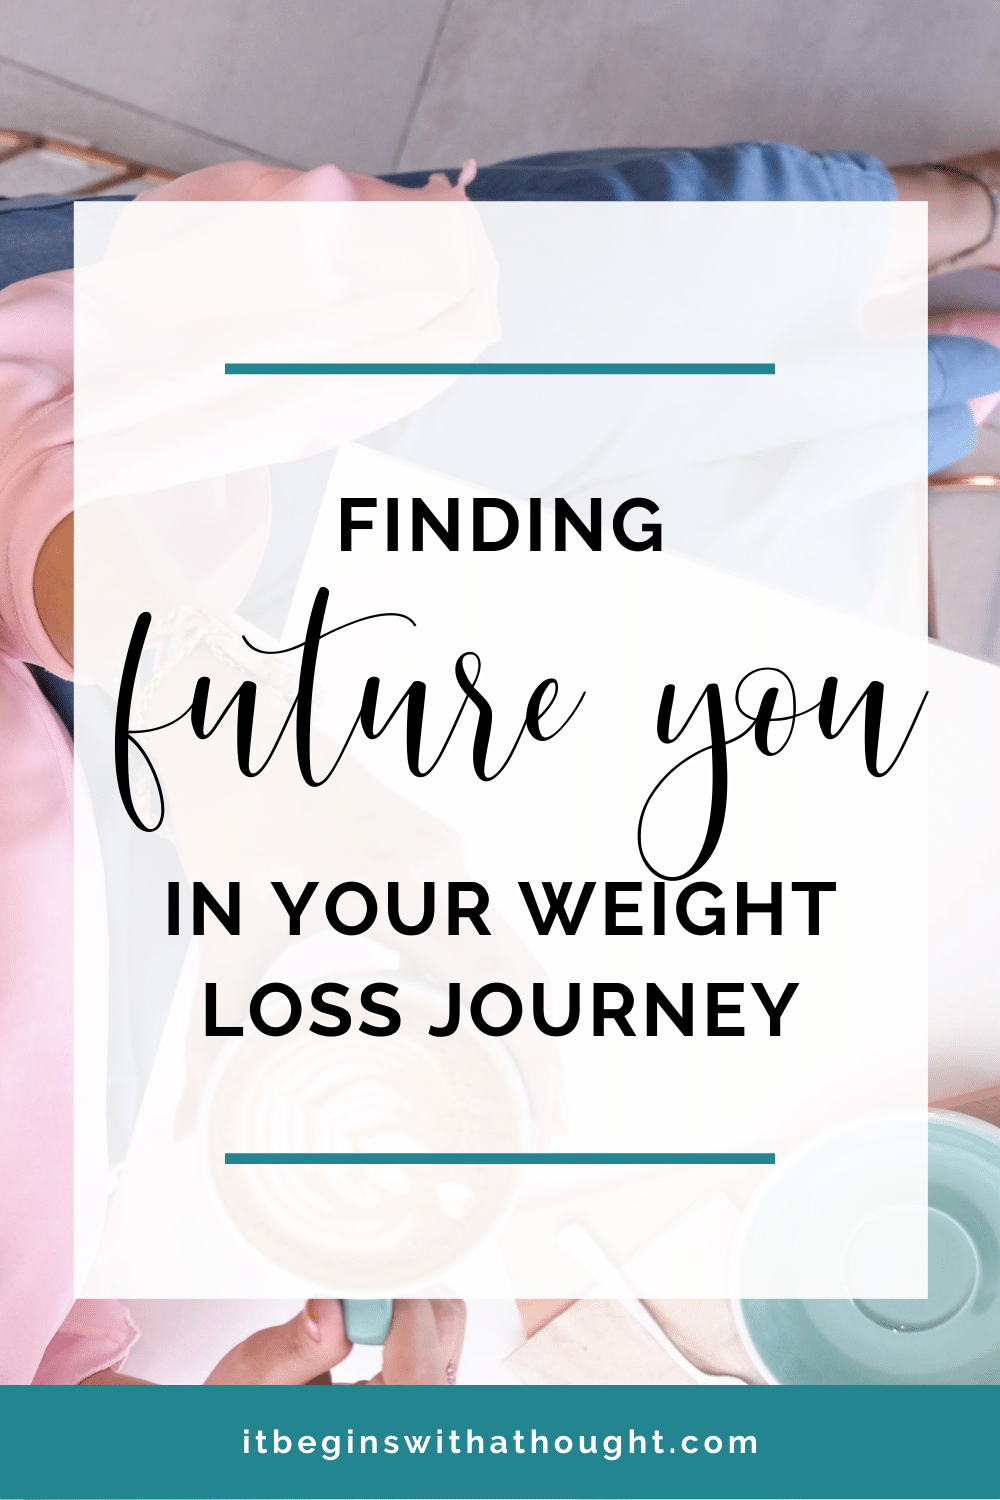 Finding future you in your weight loss journey